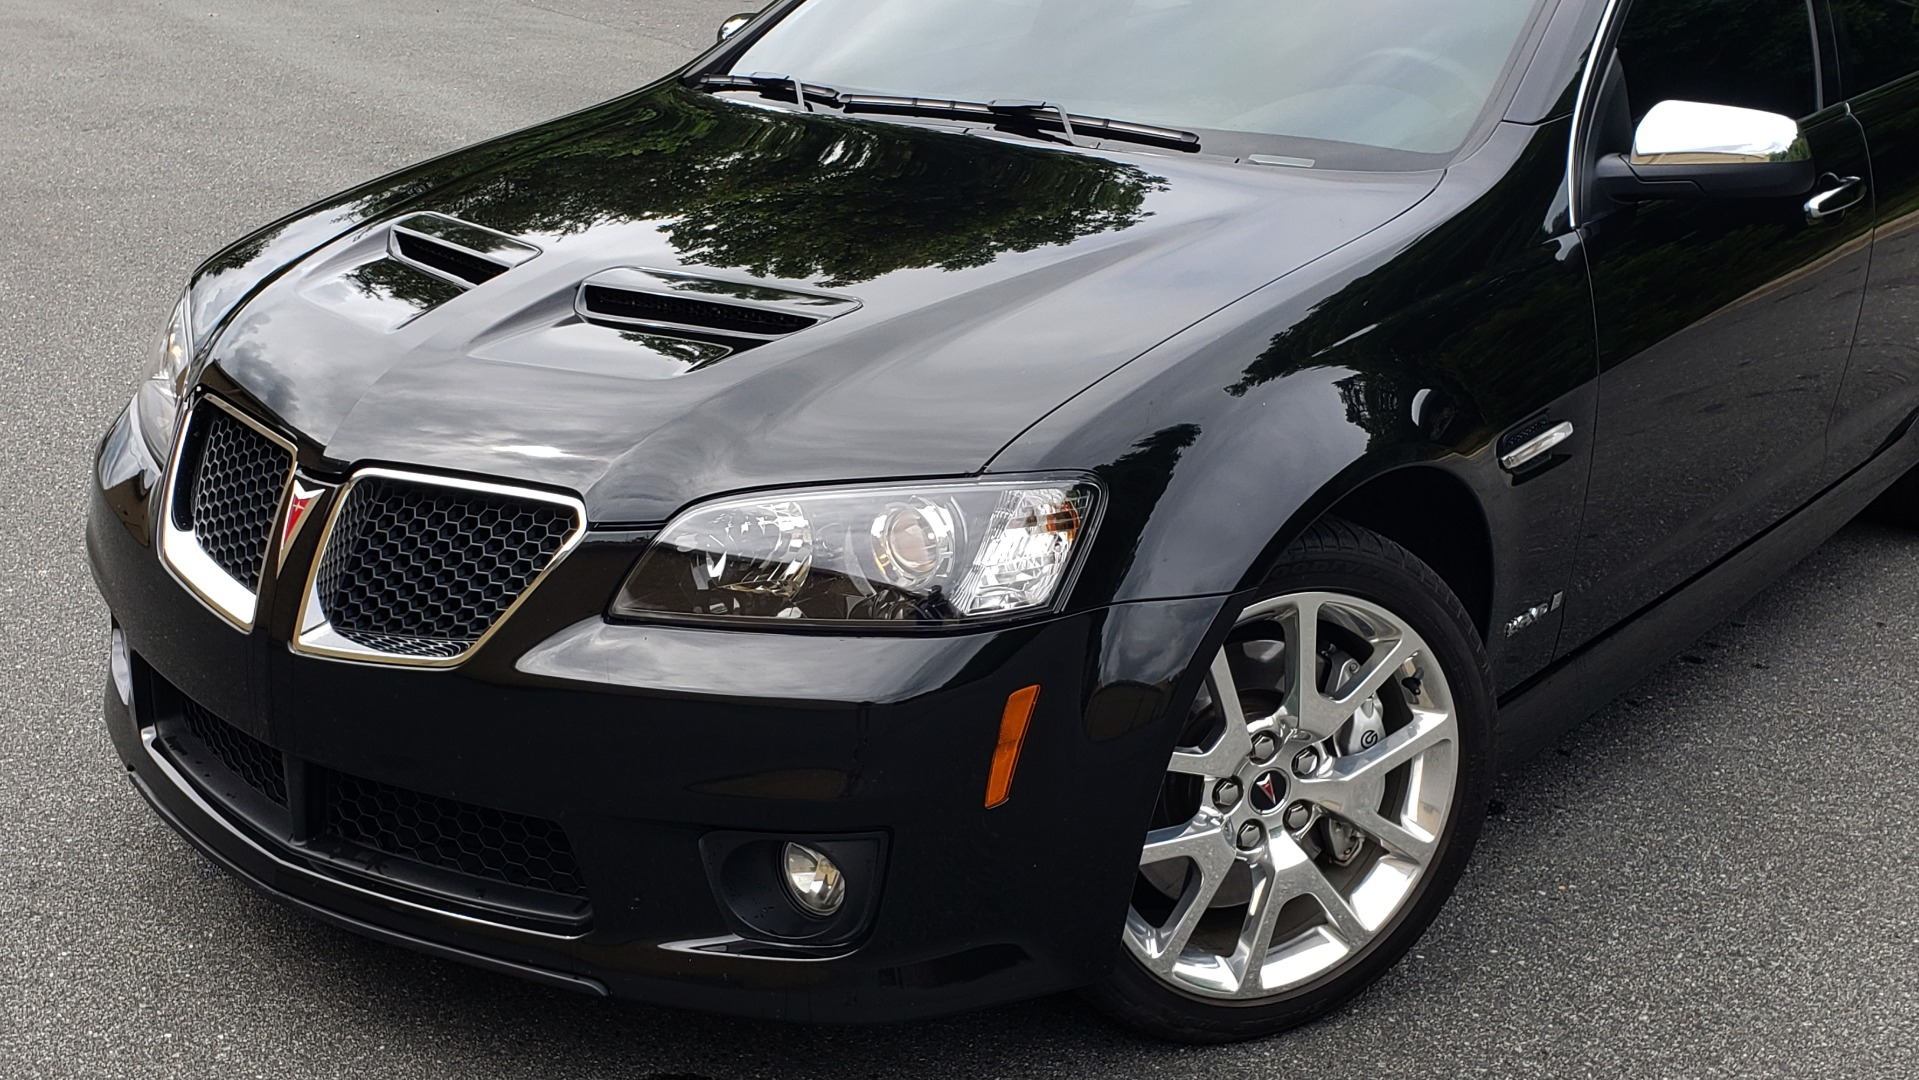 Used 2009 Pontiac G8 GXP / 6.2L LS3 V8 / 6-SPD AUTO / SUNROOF / 19IN WHEELS for sale Sold at Formula Imports in Charlotte NC 28227 3